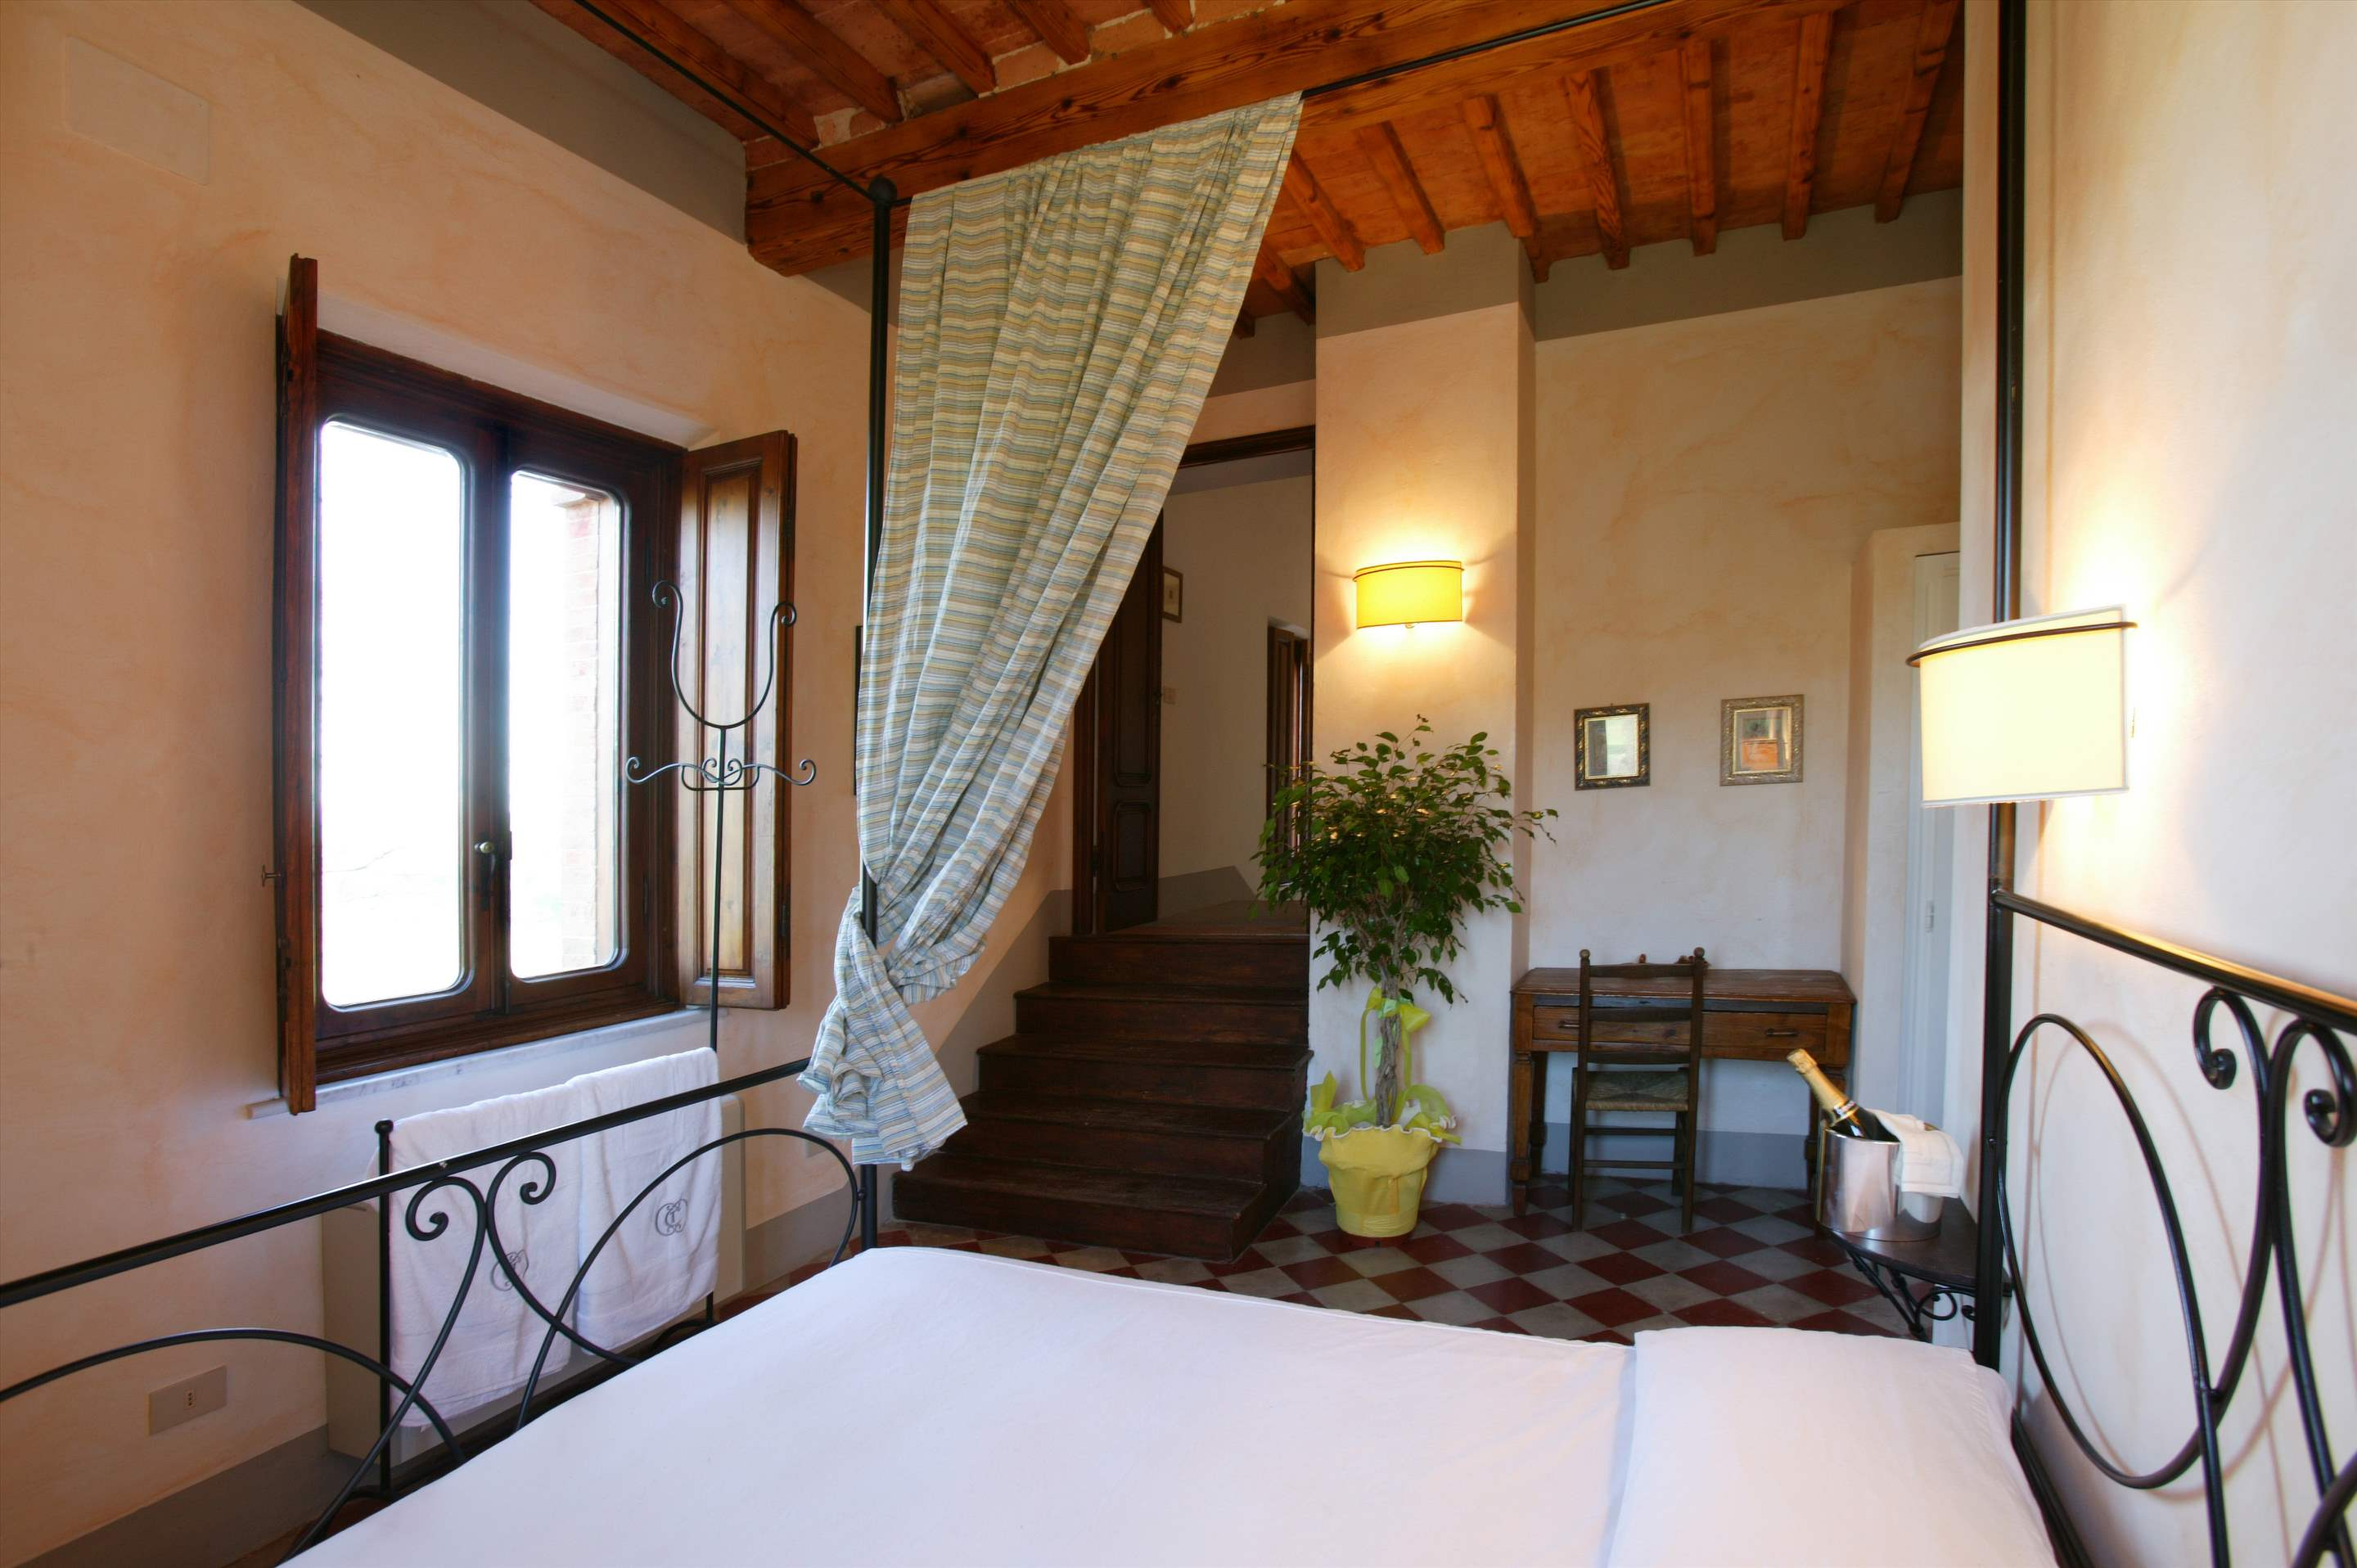 Villa Di Archi & Dependance, 9 bedroom villa in Tuscany Coast, Tuscany Photo #25